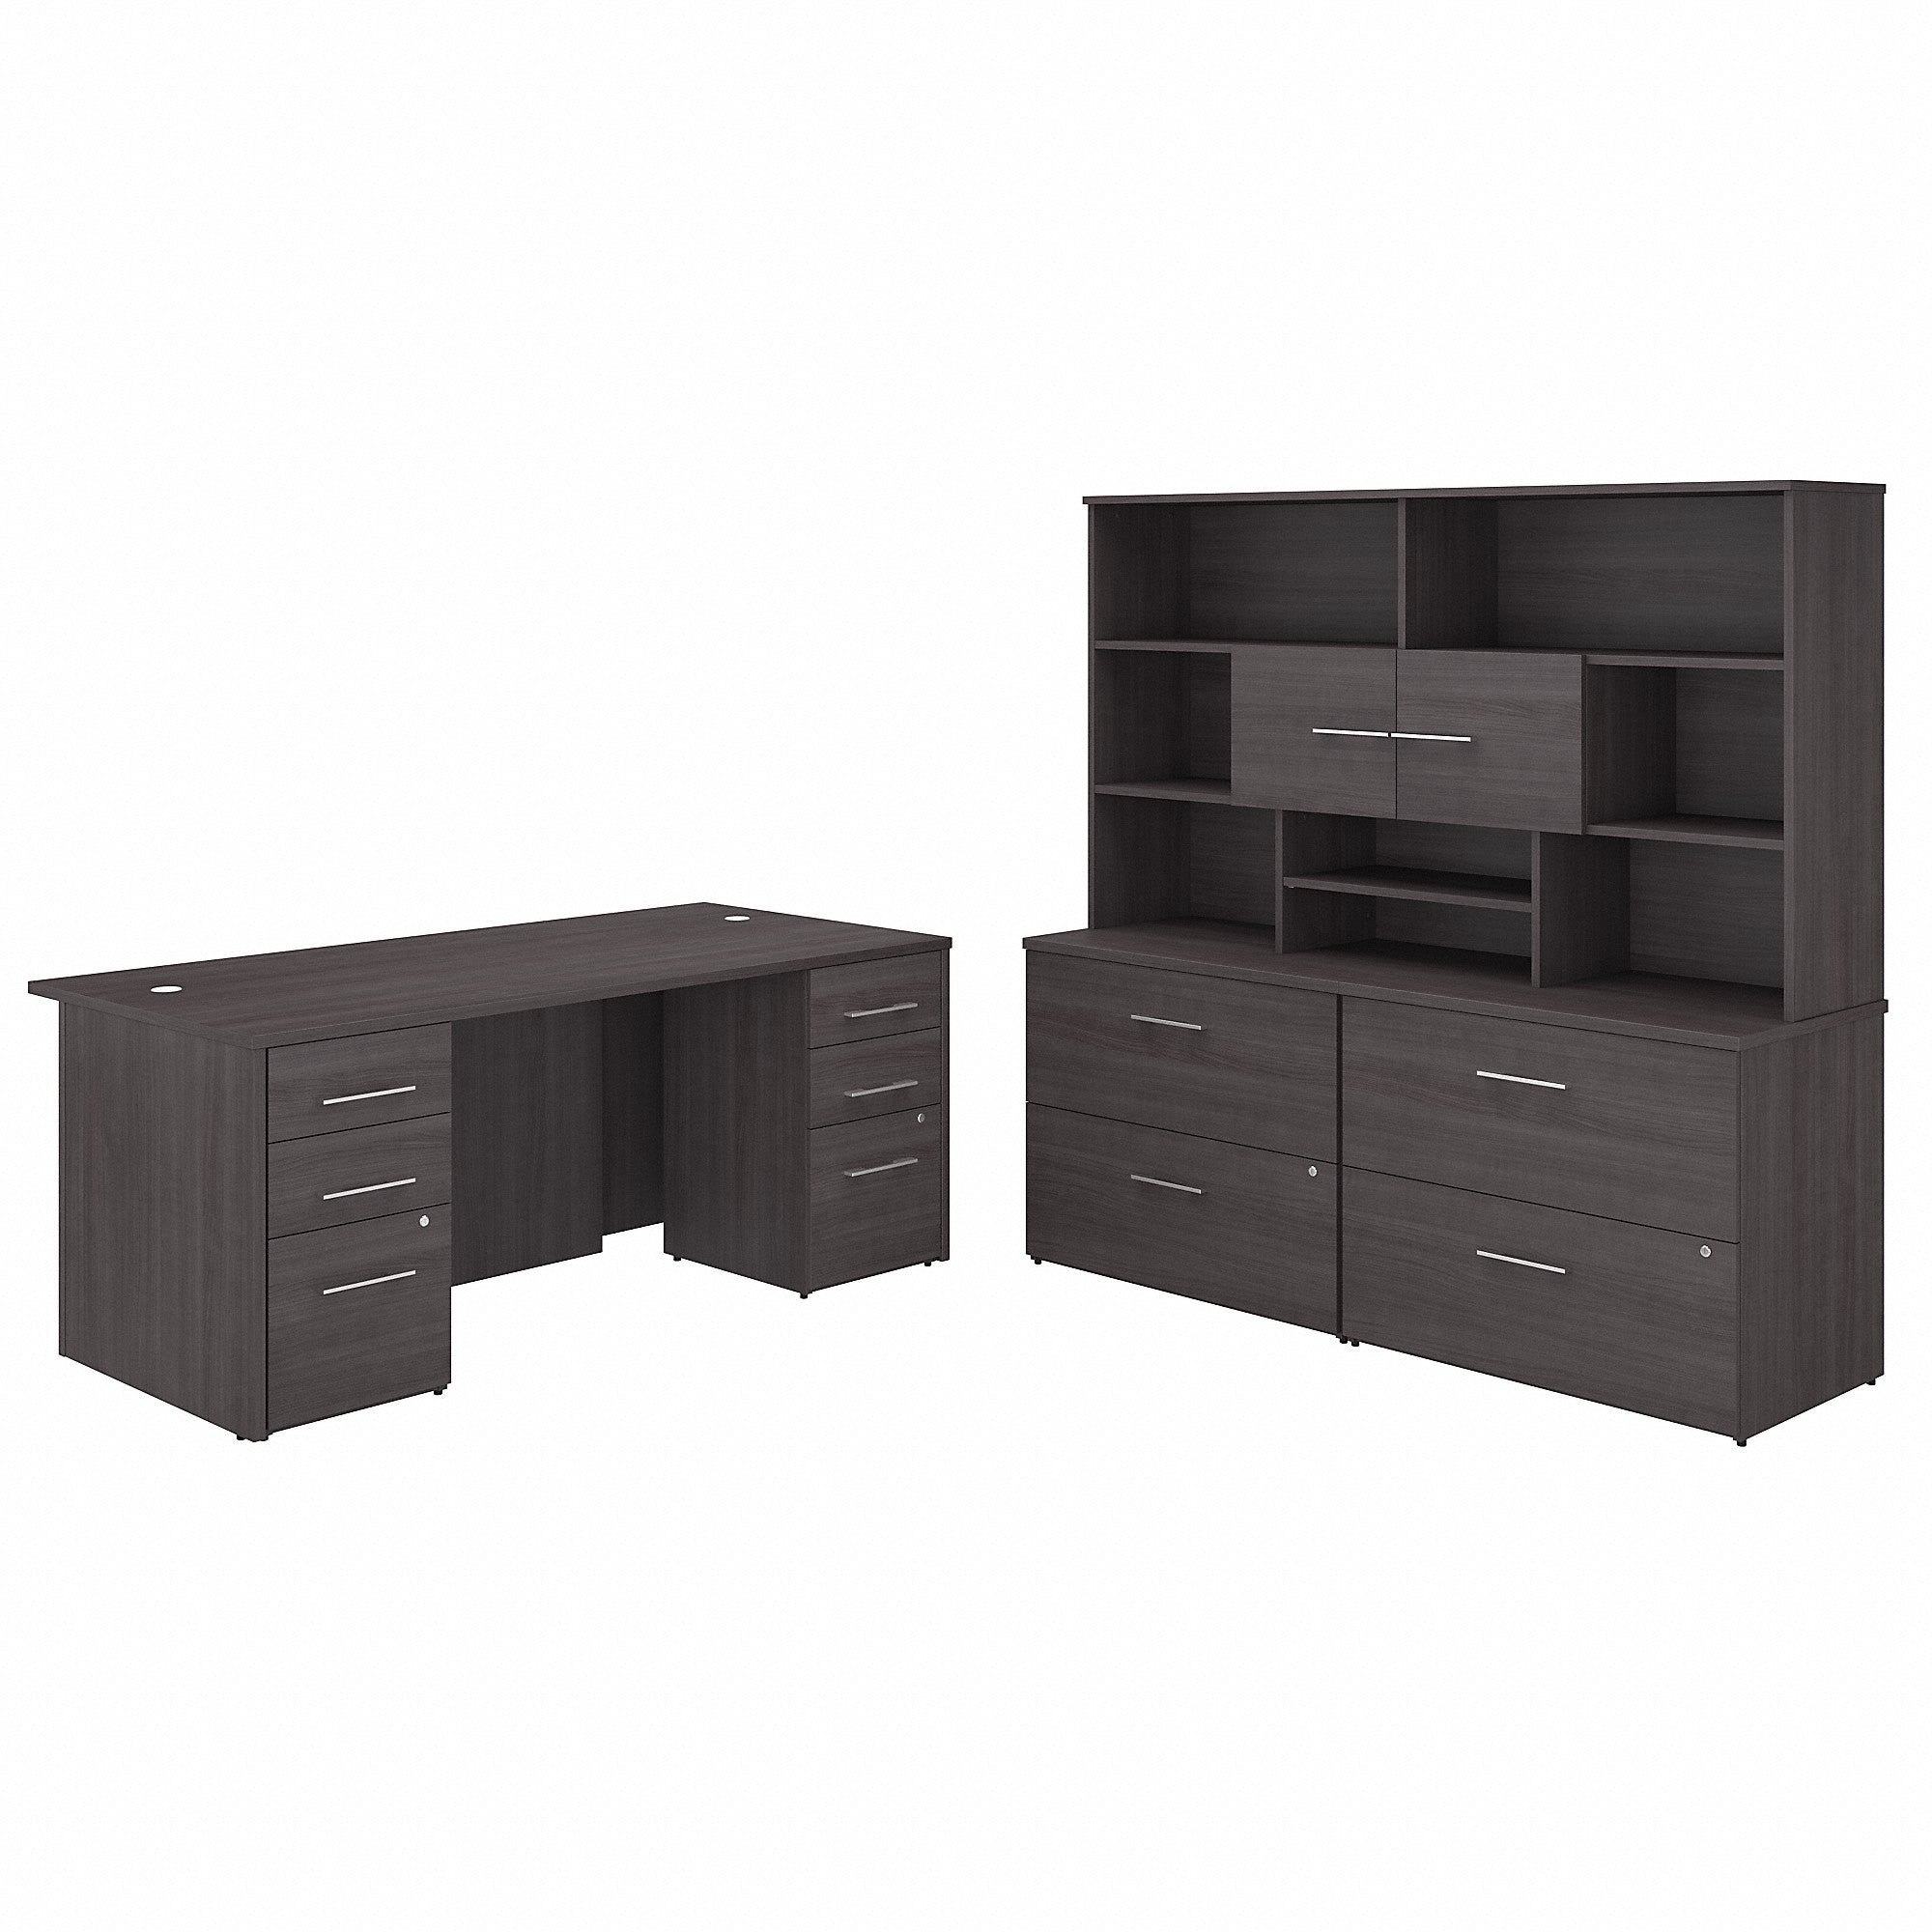 Bush Business Furniture Office 500 72W x 36D Executive Desk with Drawers, Lateral File Cabinets and Hutch | Storm Gray